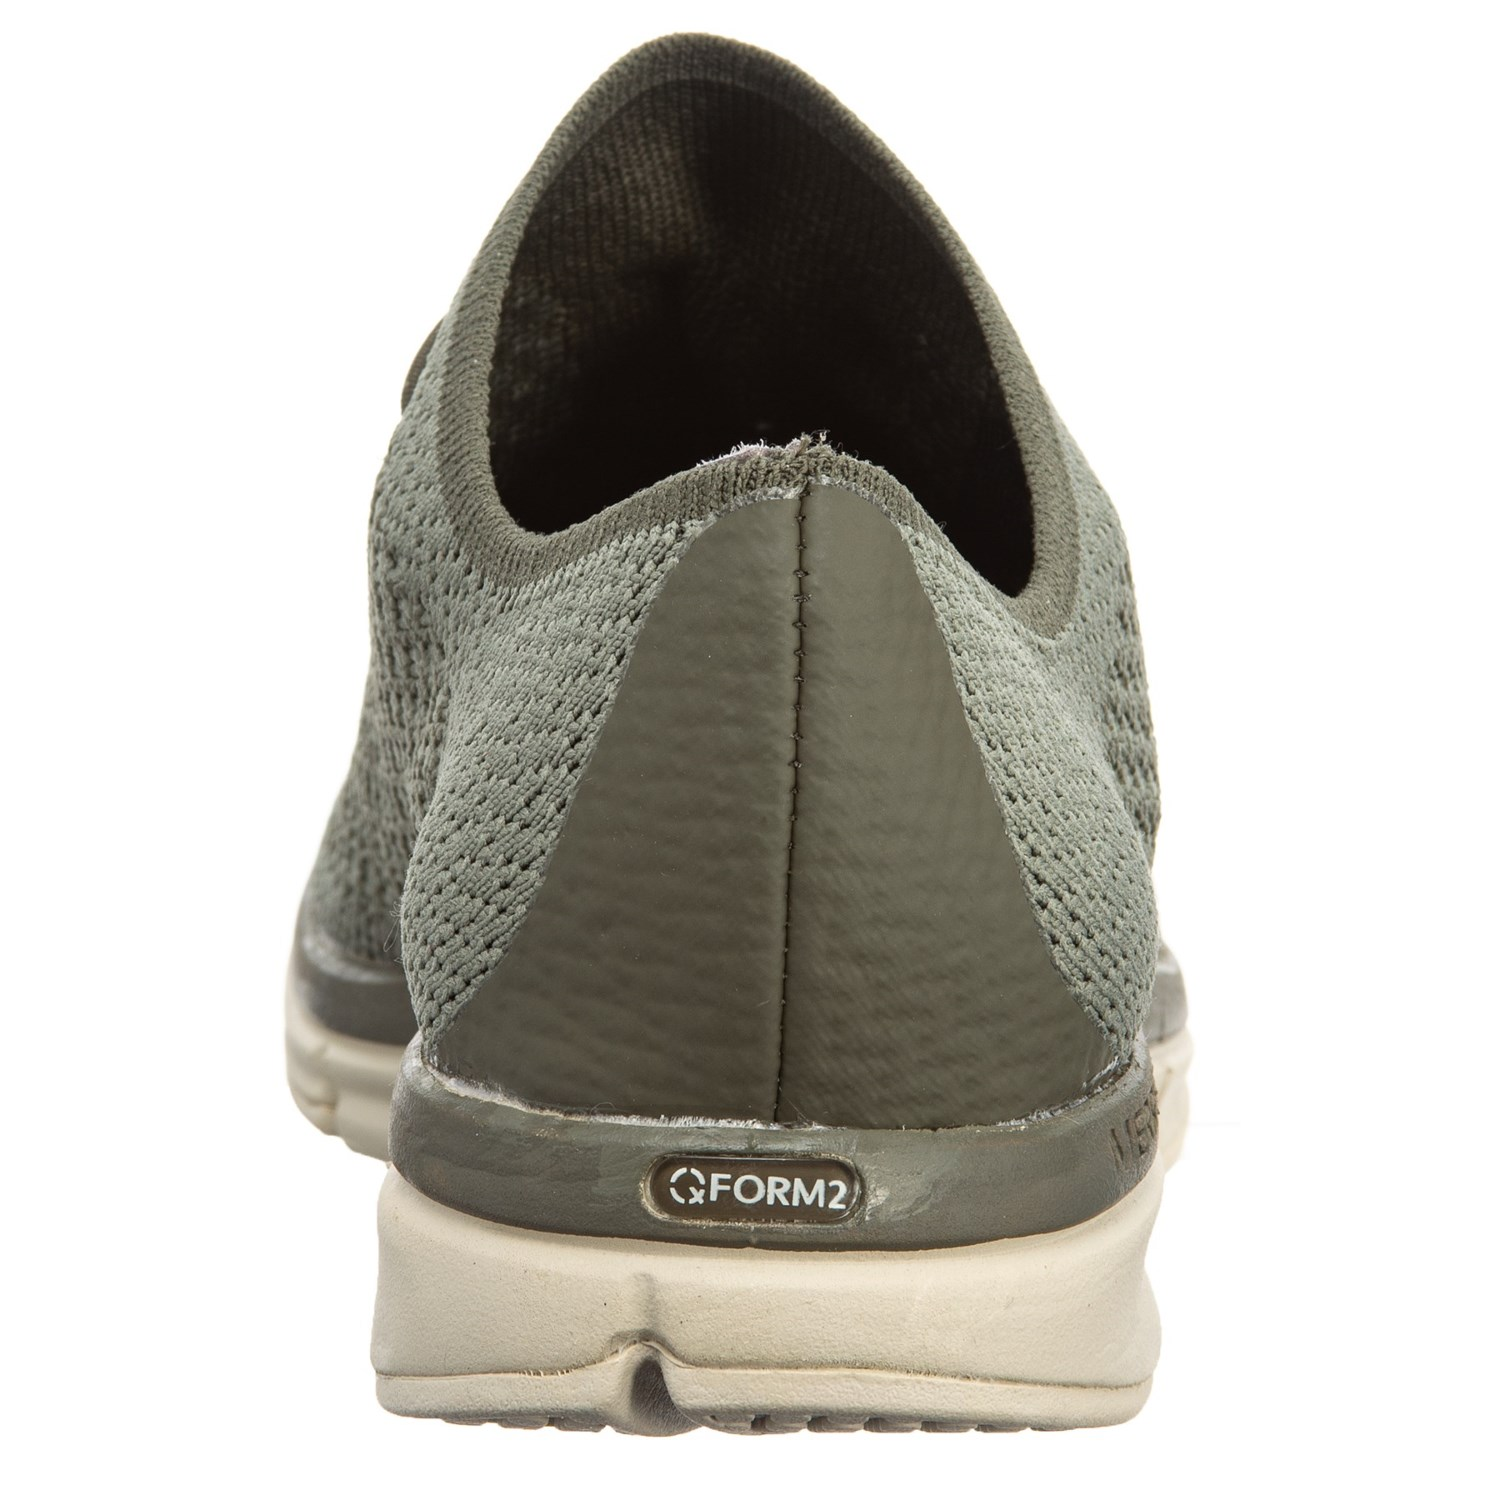 fca5e263 Merrell Zoe Sojourn Lace Knit Q2 Sneakers (For Women)